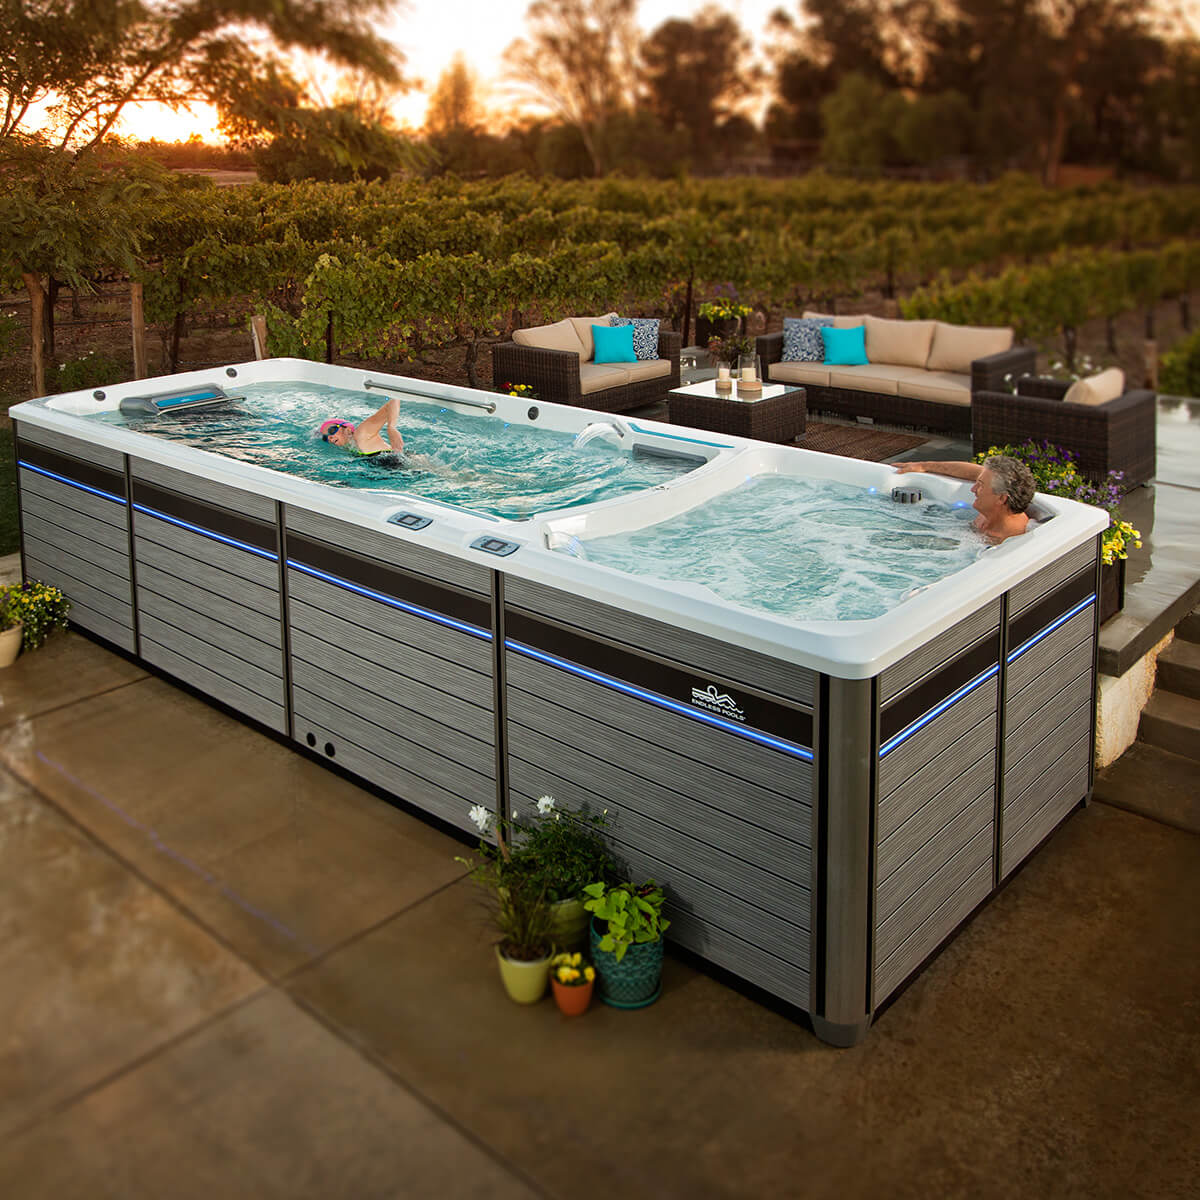 Forget the Pool. You need a Swim Spa!